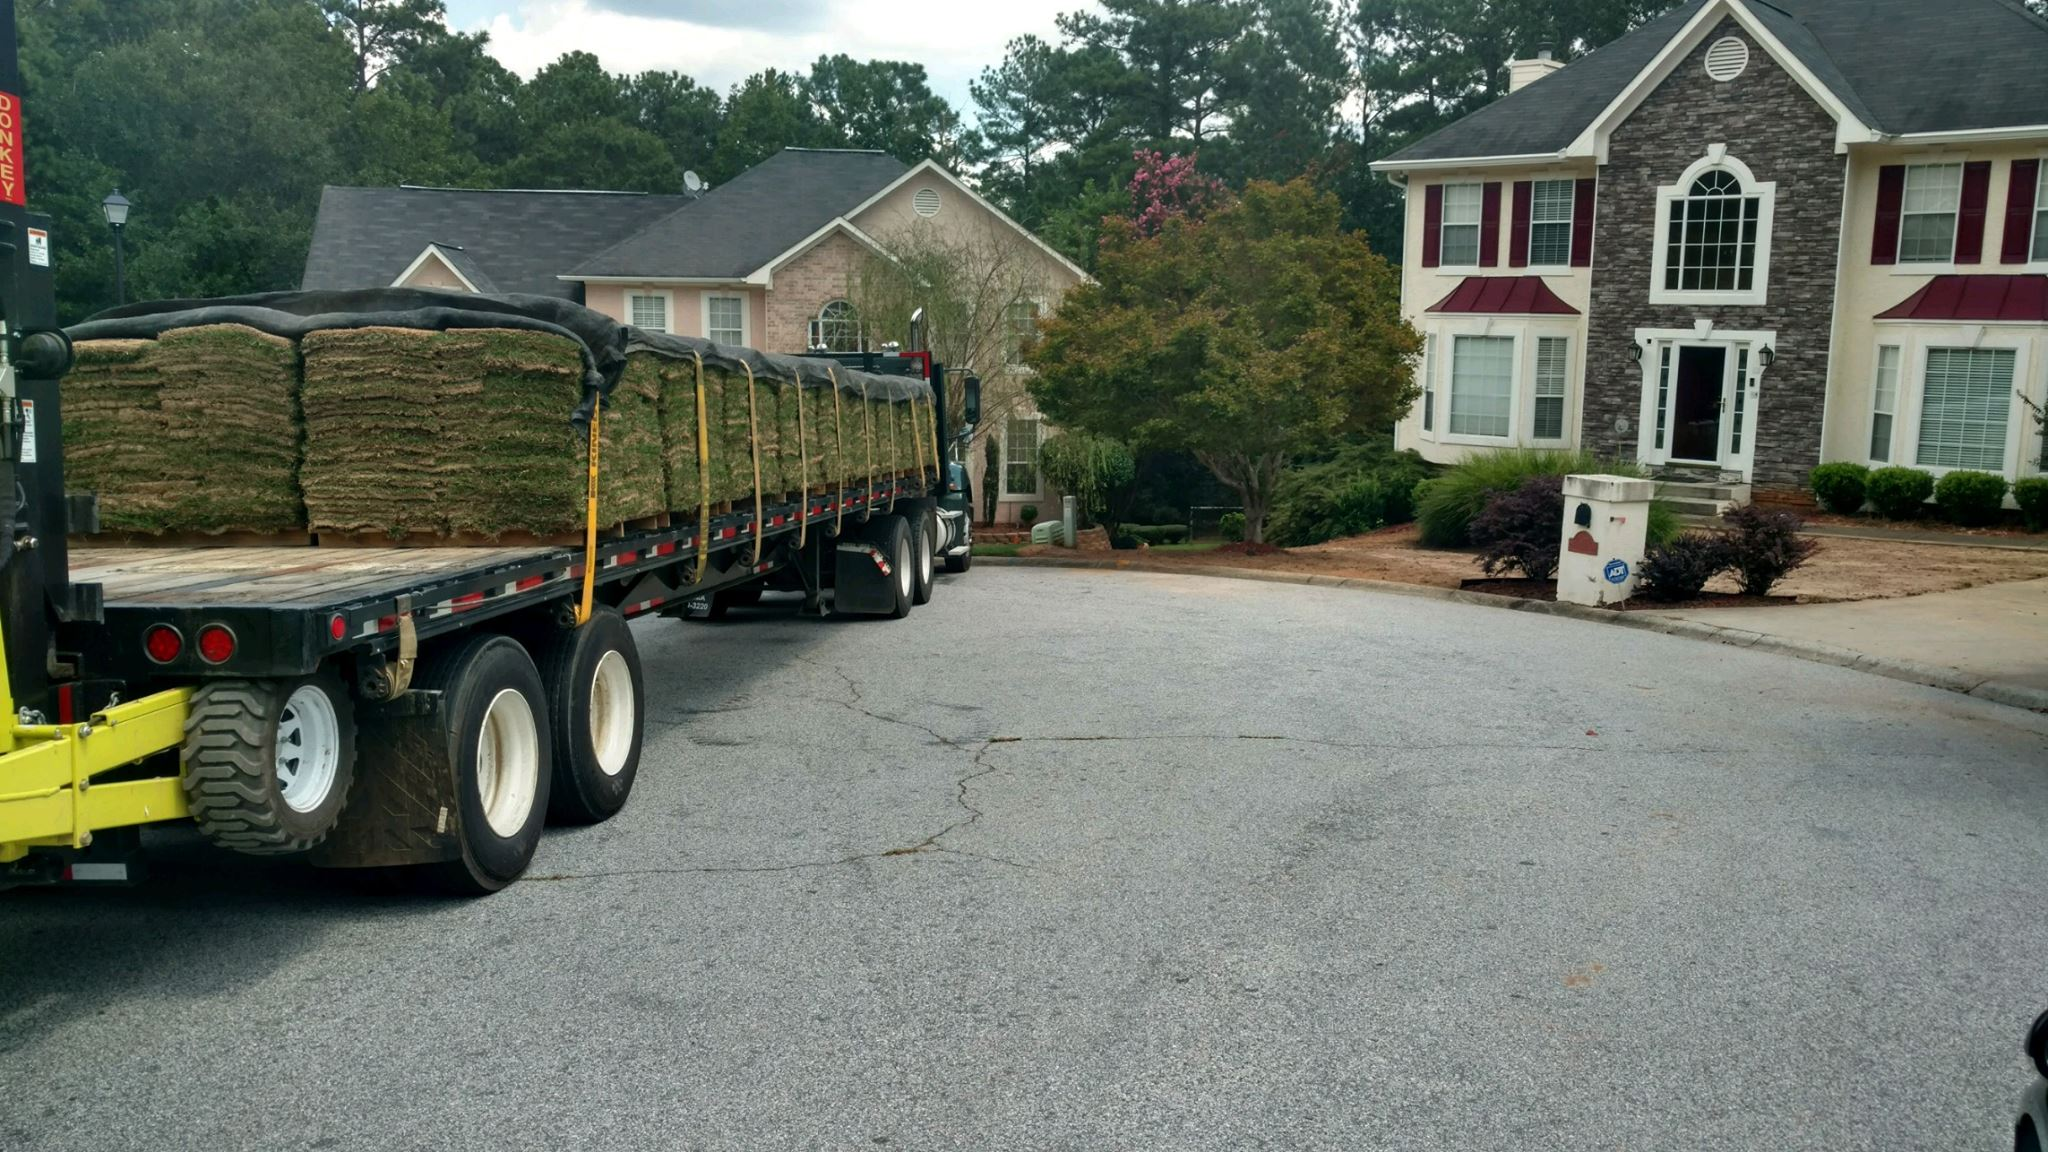 semi full of turf for a new lawn